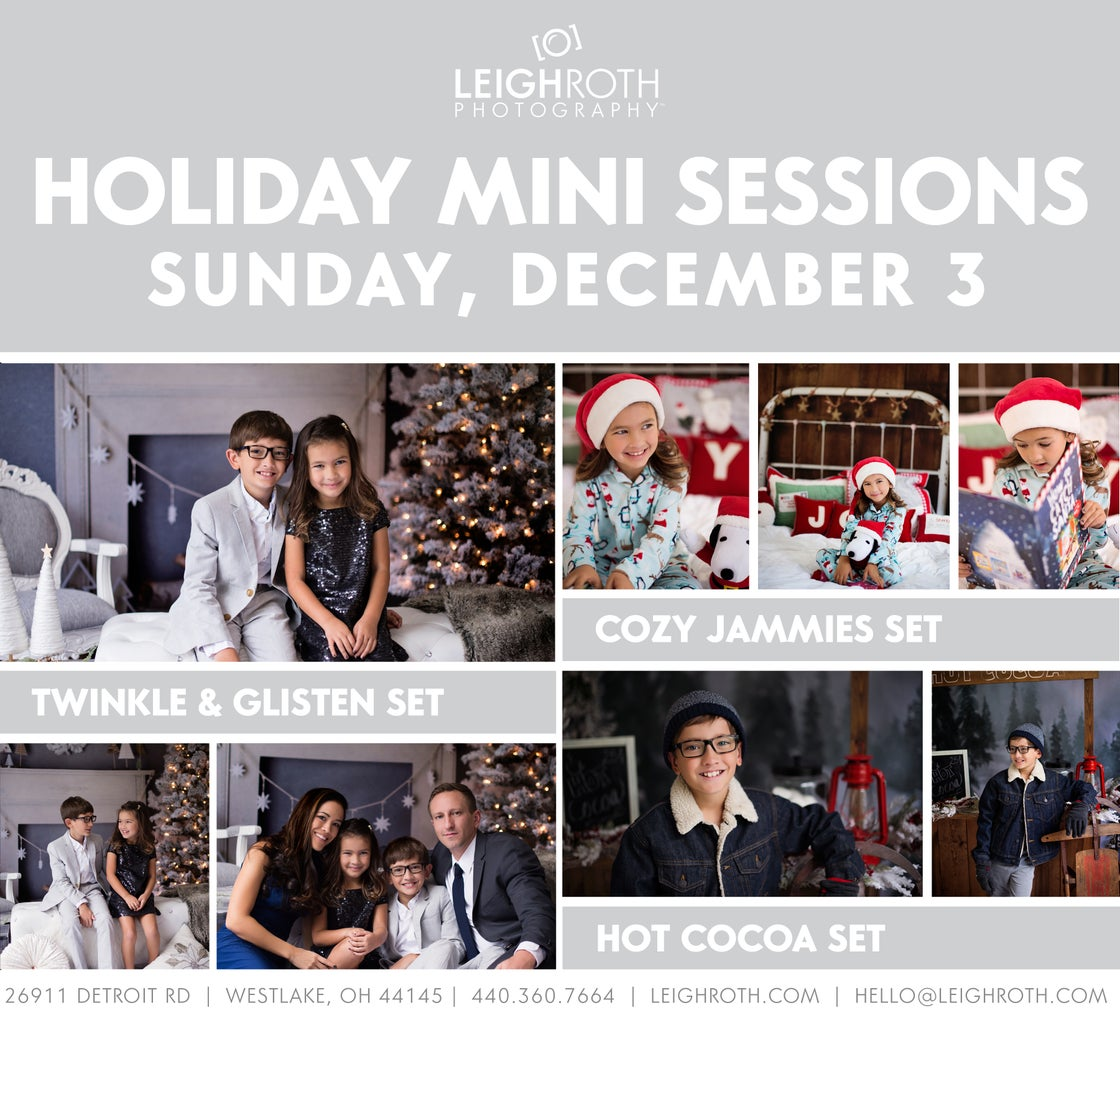 Image of 2017 HOLIDAY MINI SESSION - DECEMBER 3